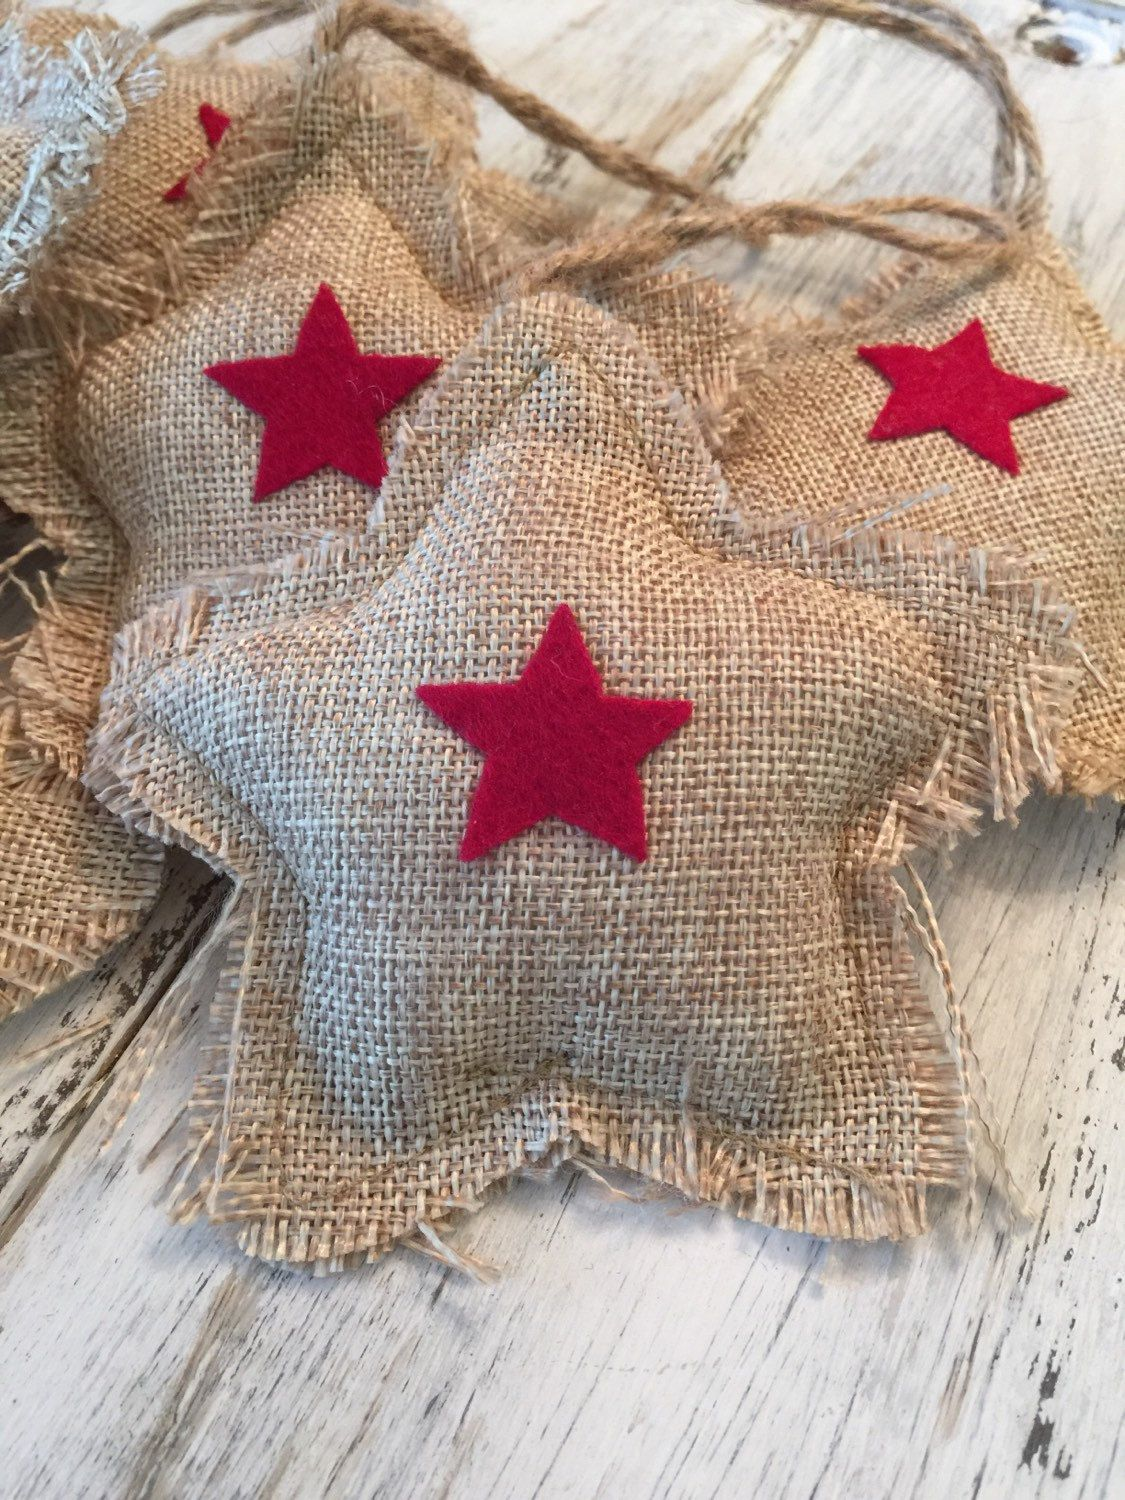 6 BURLAP STARS for Fourth of July - Star Shaped w Red Felt Appliques - Perfect Decoration - Country Wedding, Bridal Shower, Handmade Accent by PlanePaper4u on Etsy